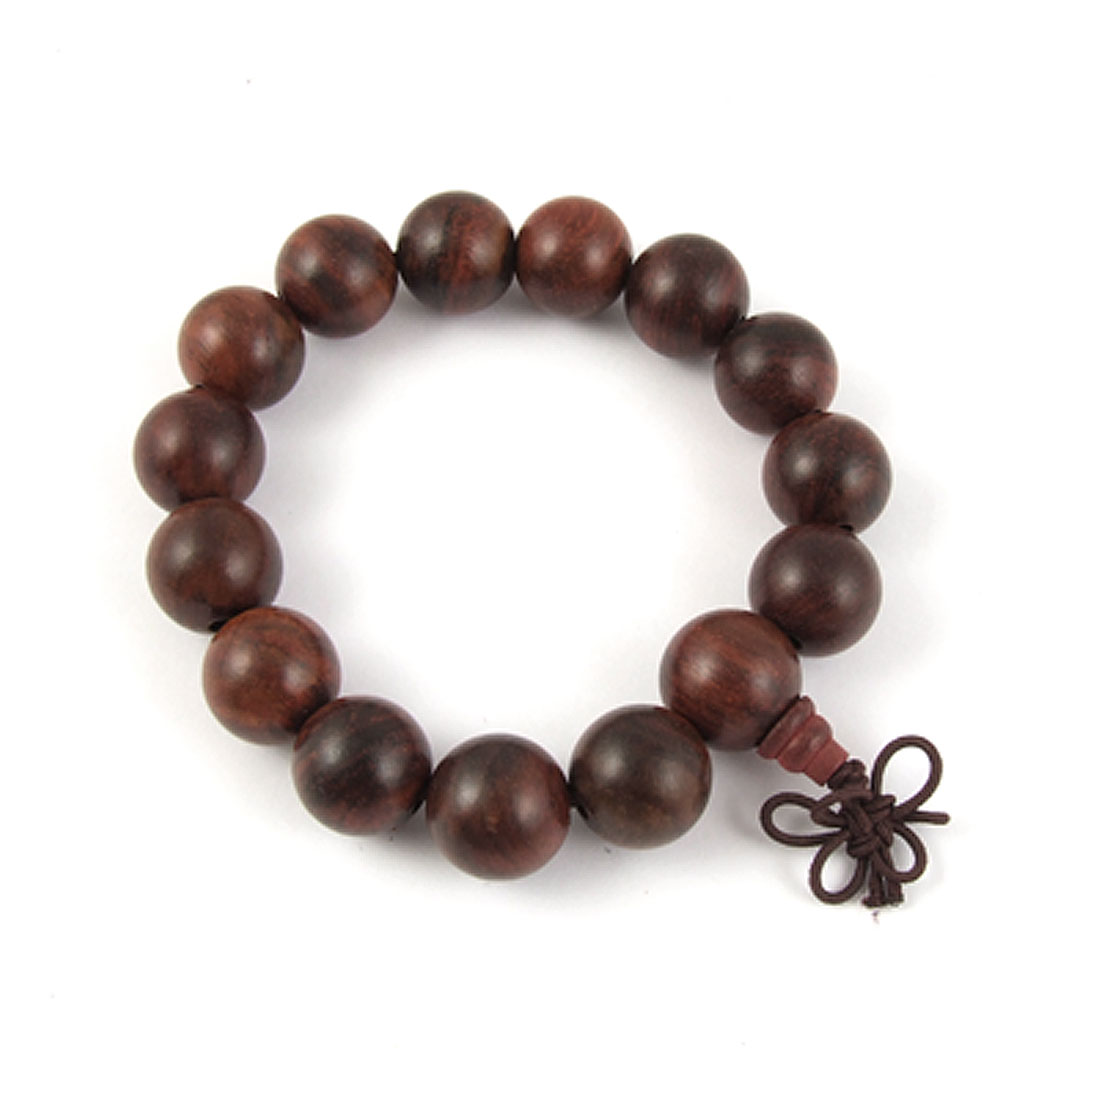 Buddhist Brown Wooden Beads Elastic Wrist Bracelet